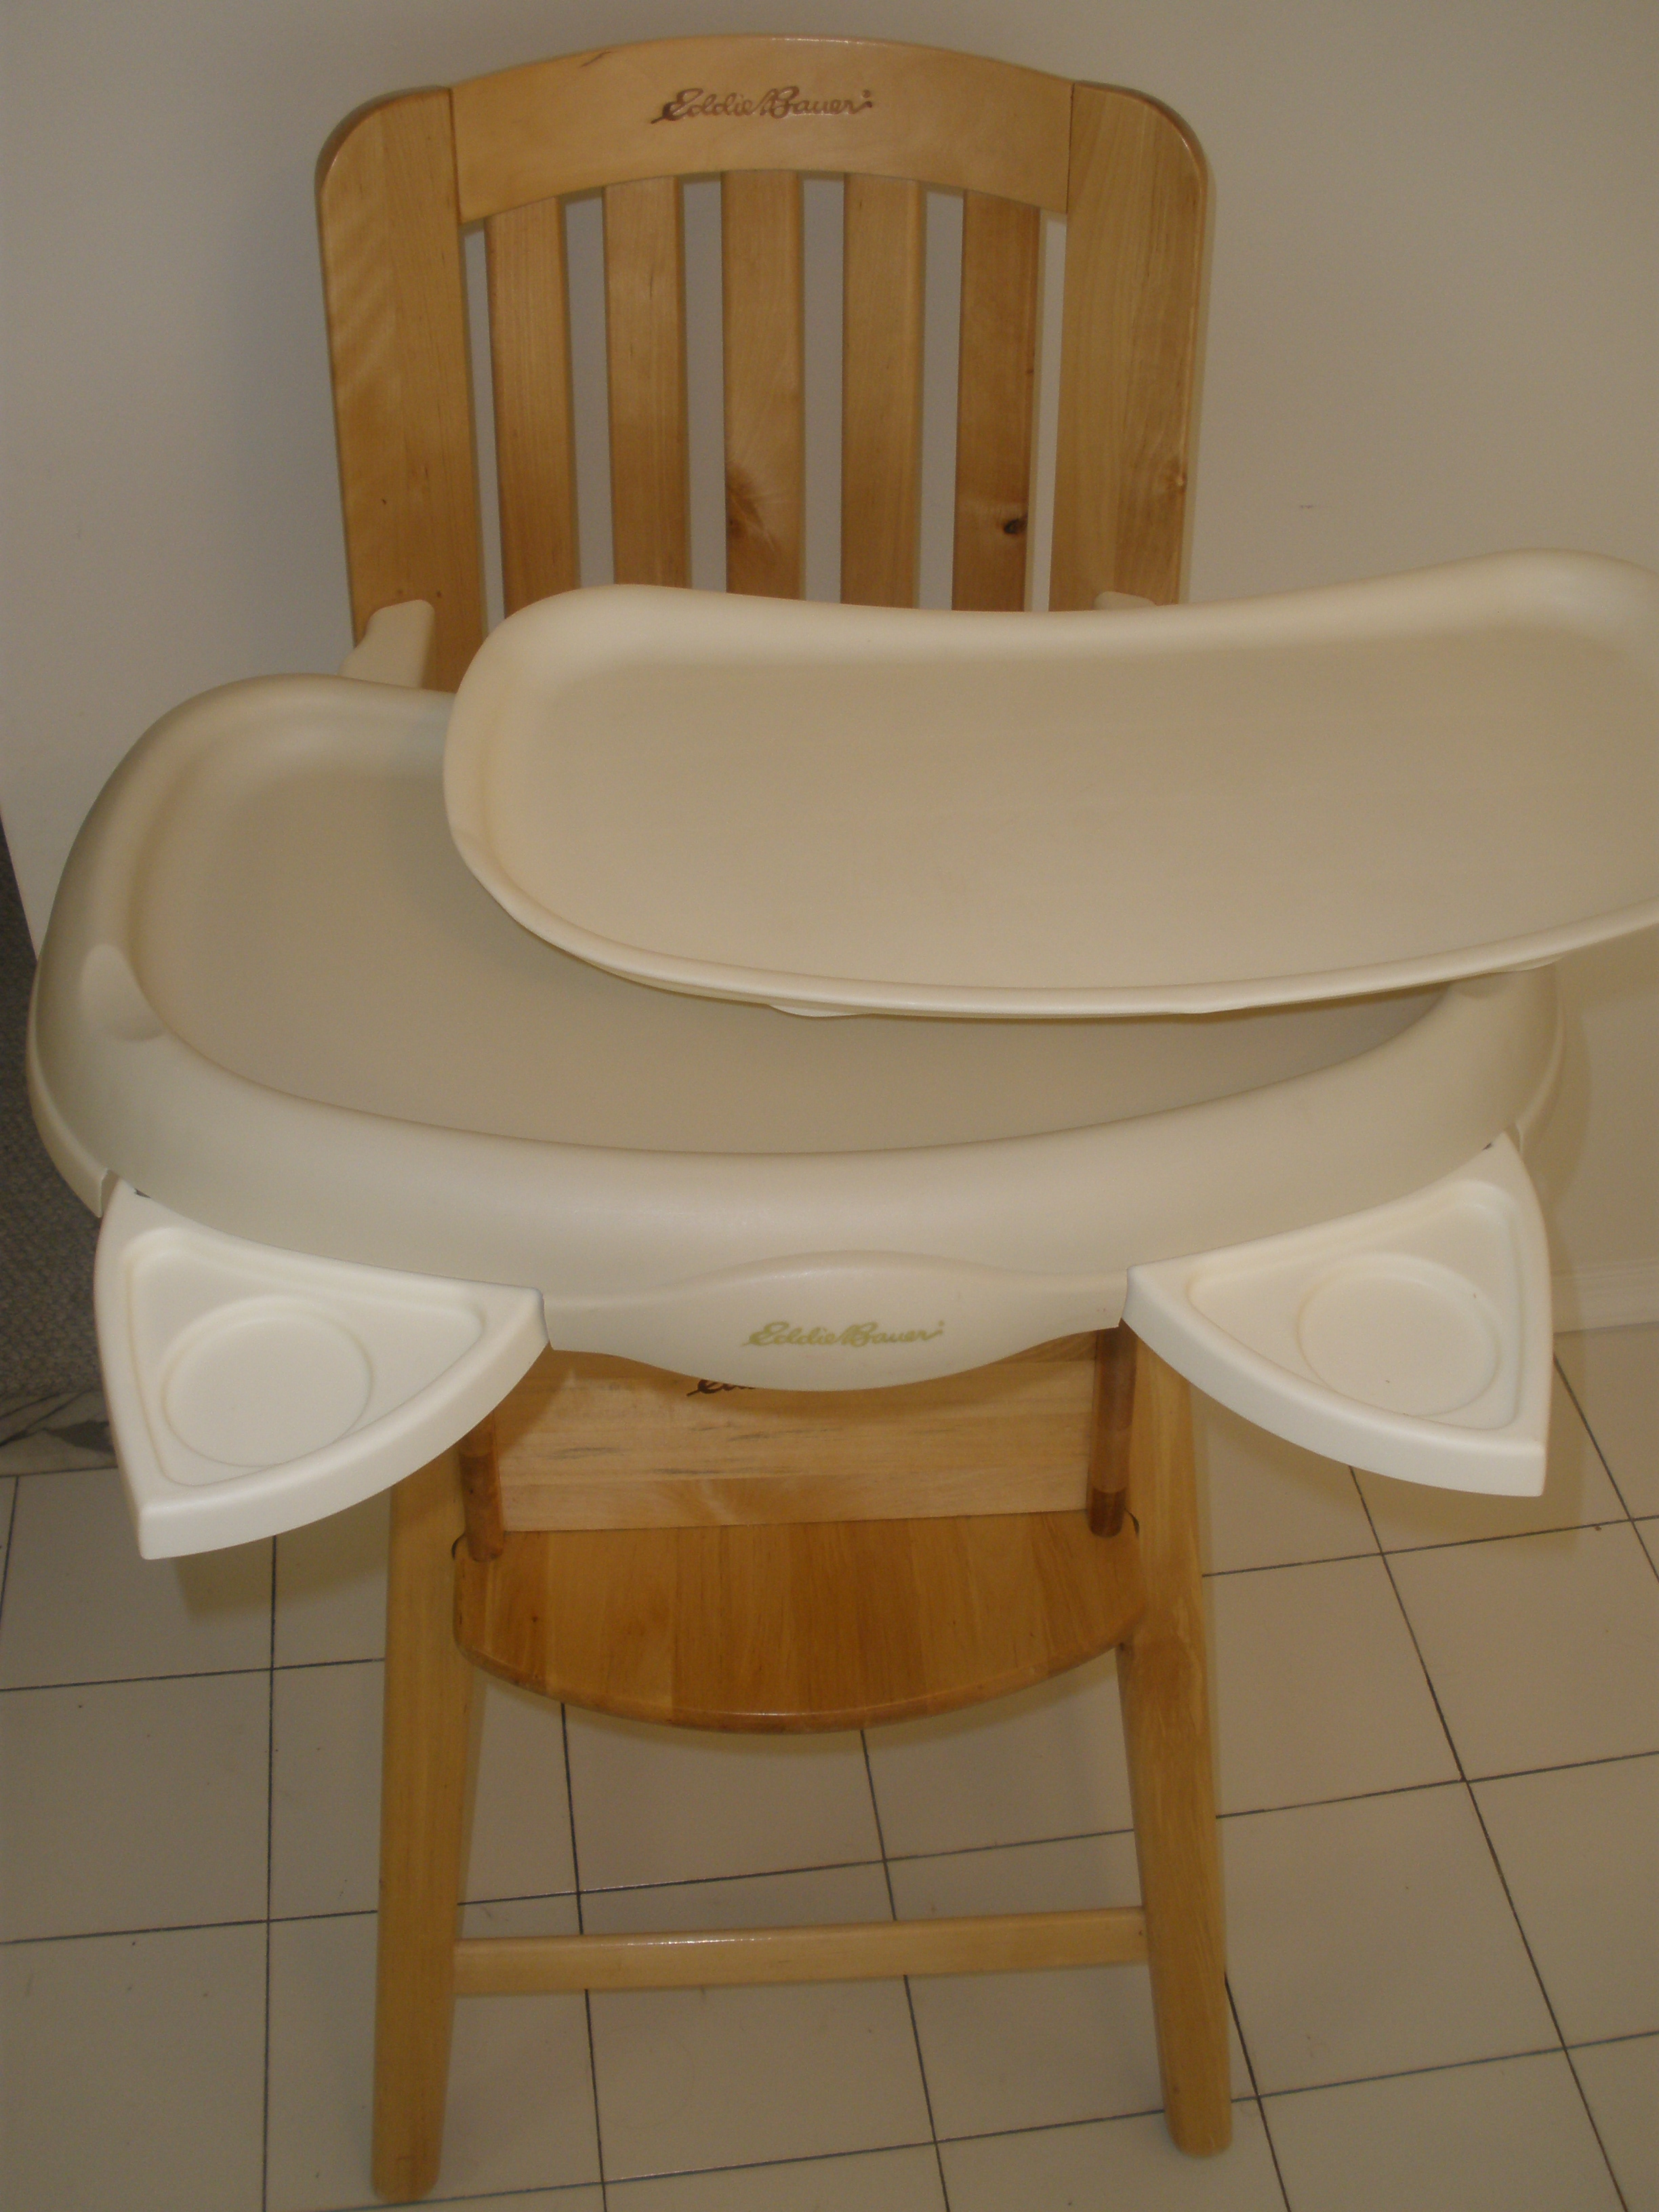 Baby Eating Chair Attached To Table Modern Home Design